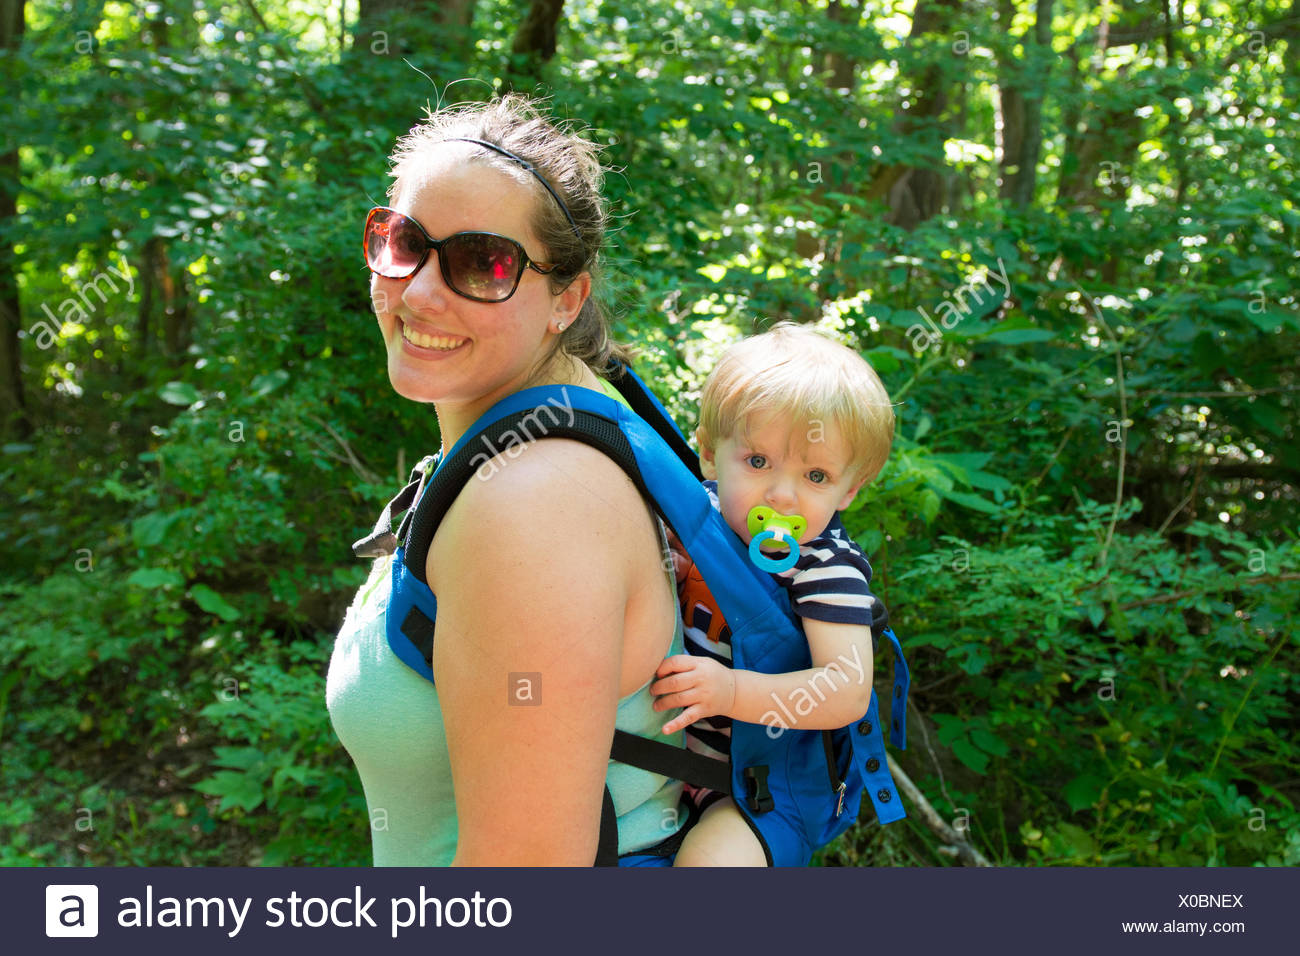 USA, Indiana, Mother and son hiking in woods Stock Photo